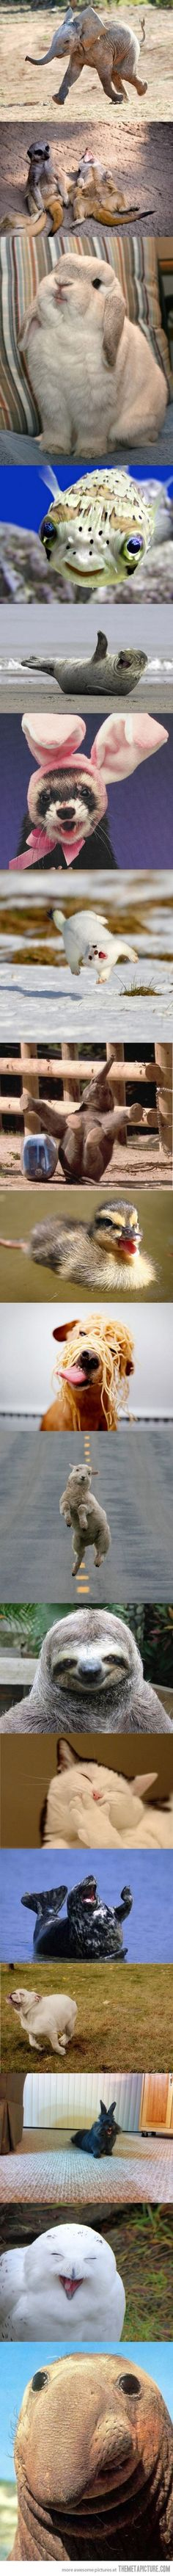 World's happiest animals…